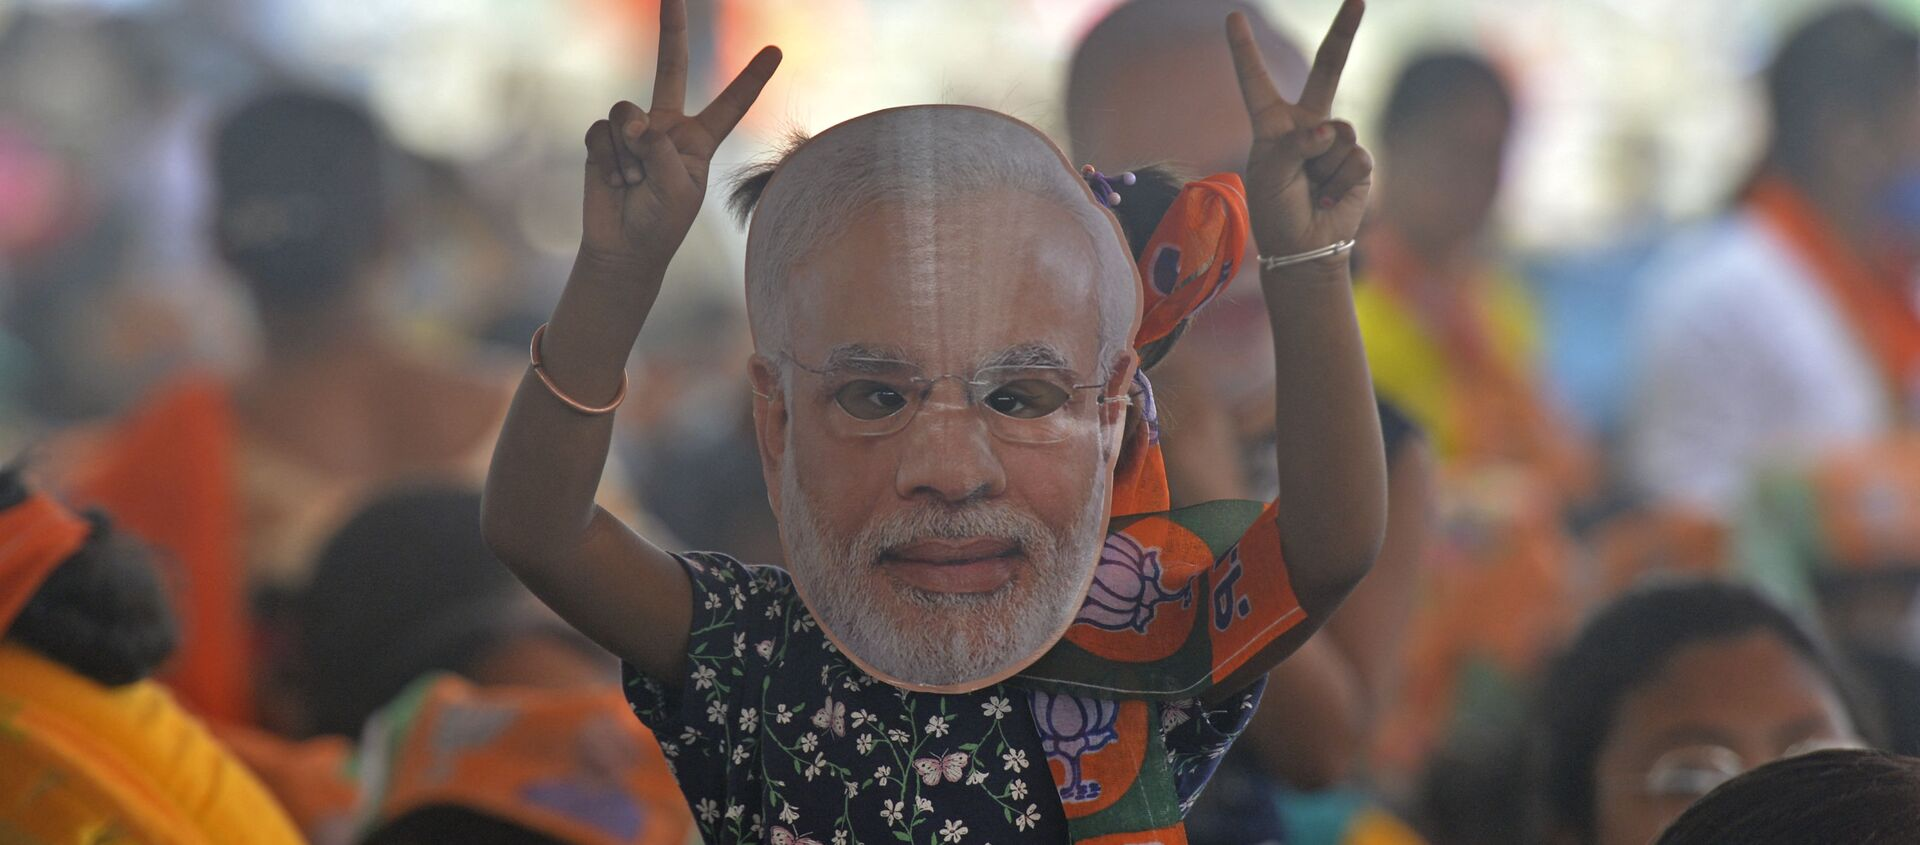 A supporter of Bharatiya Janata Party (BJP) wearing a face cutout of Indian Prime Minister Narendra Modi attends a public rally being addressed by him during the ongoing fourth phase of the West Bengal's state legislative assembly elections, at Kawakhali on the outskirts of Siliguri on April 10, 2021. - Sputnik International, 1920, 07.07.2021